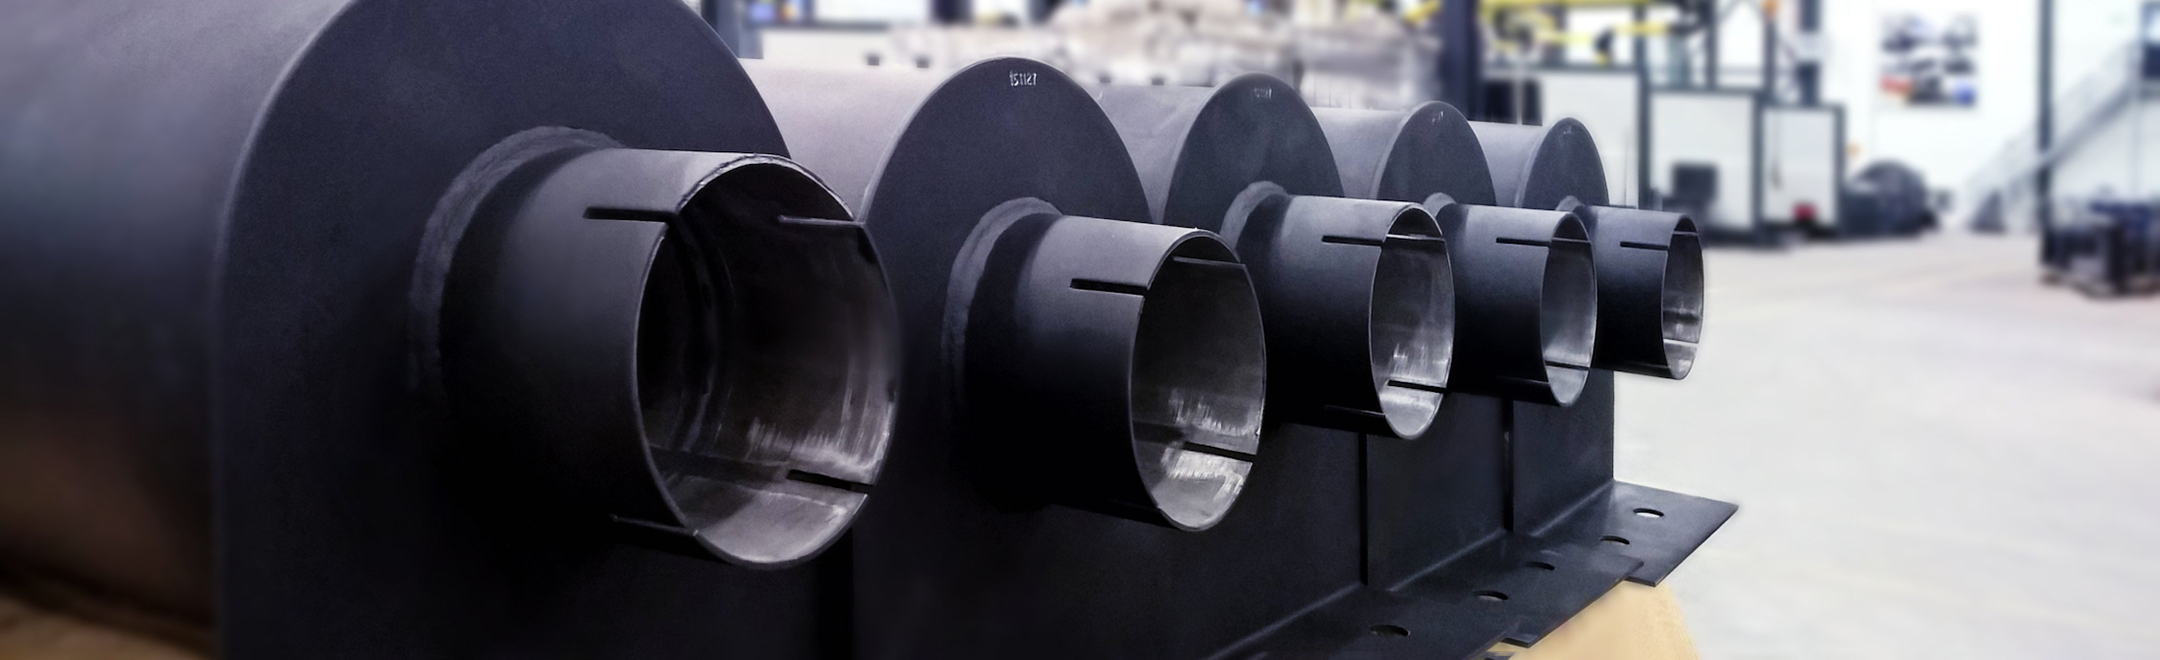 TIO BV Products - Standard silencers